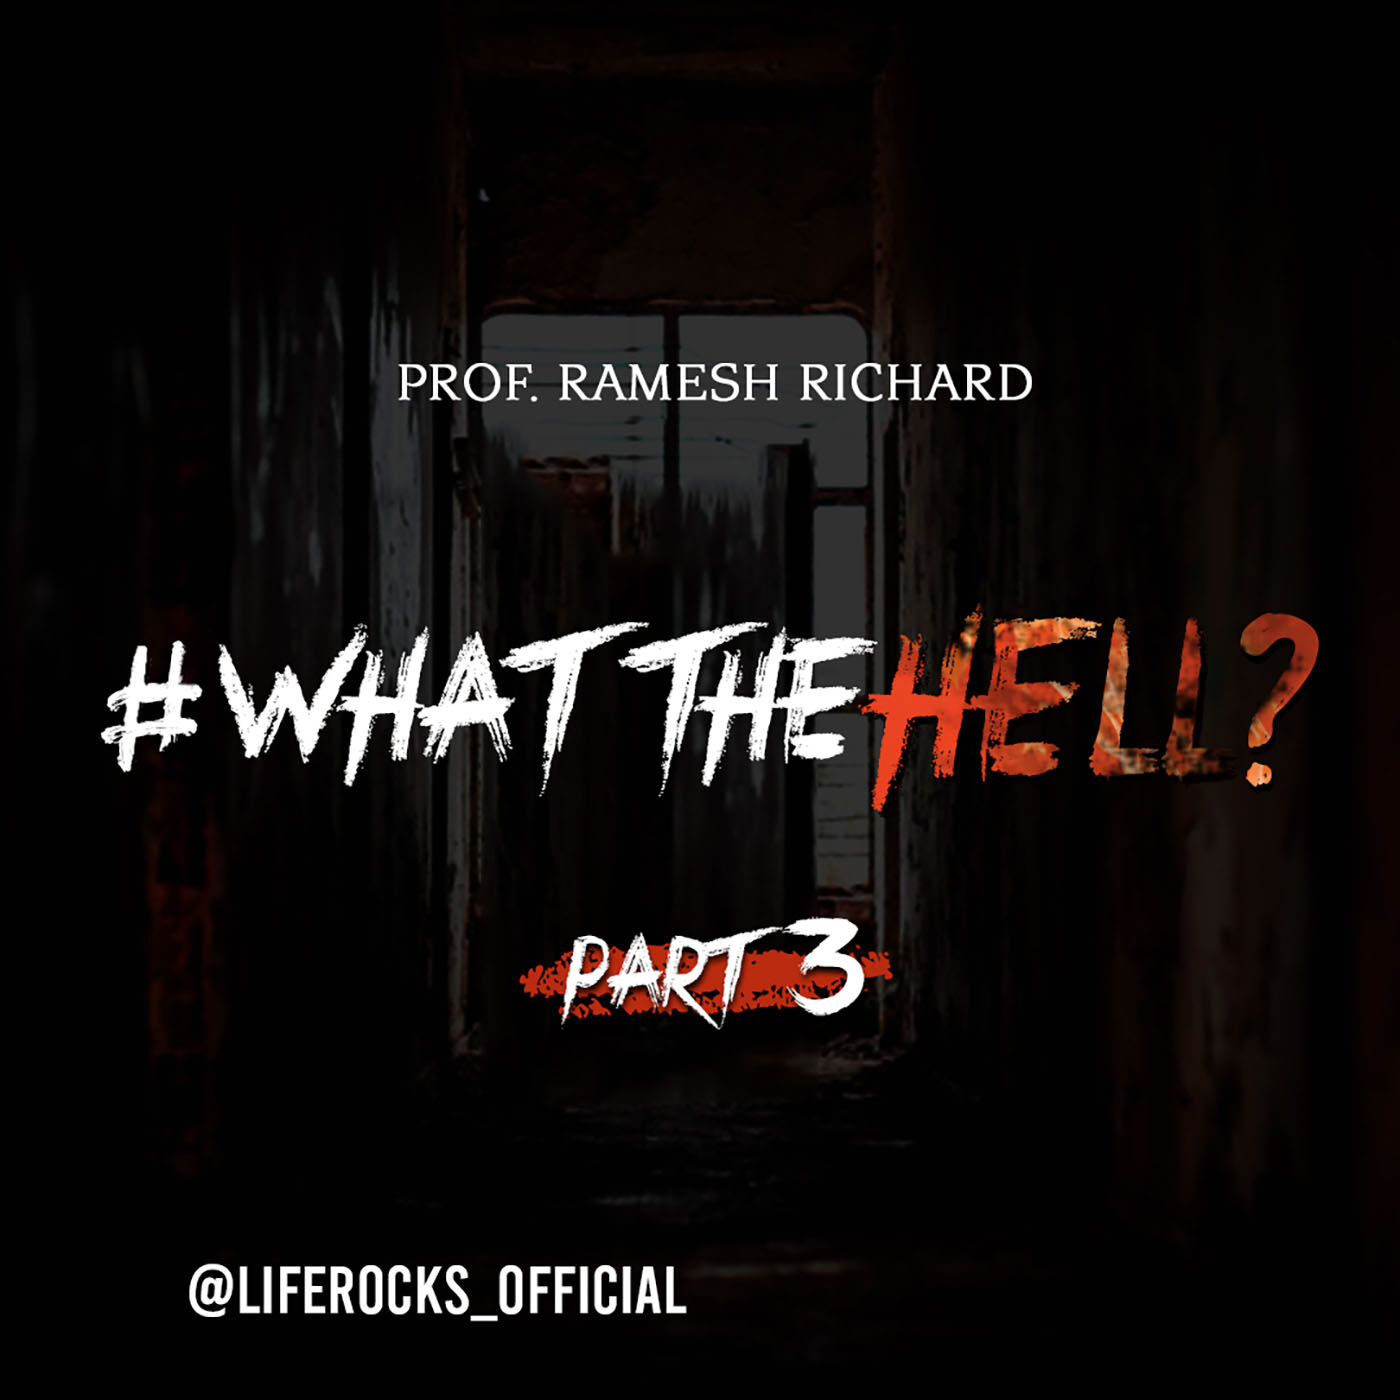 Hell: A possible reality? 3/5